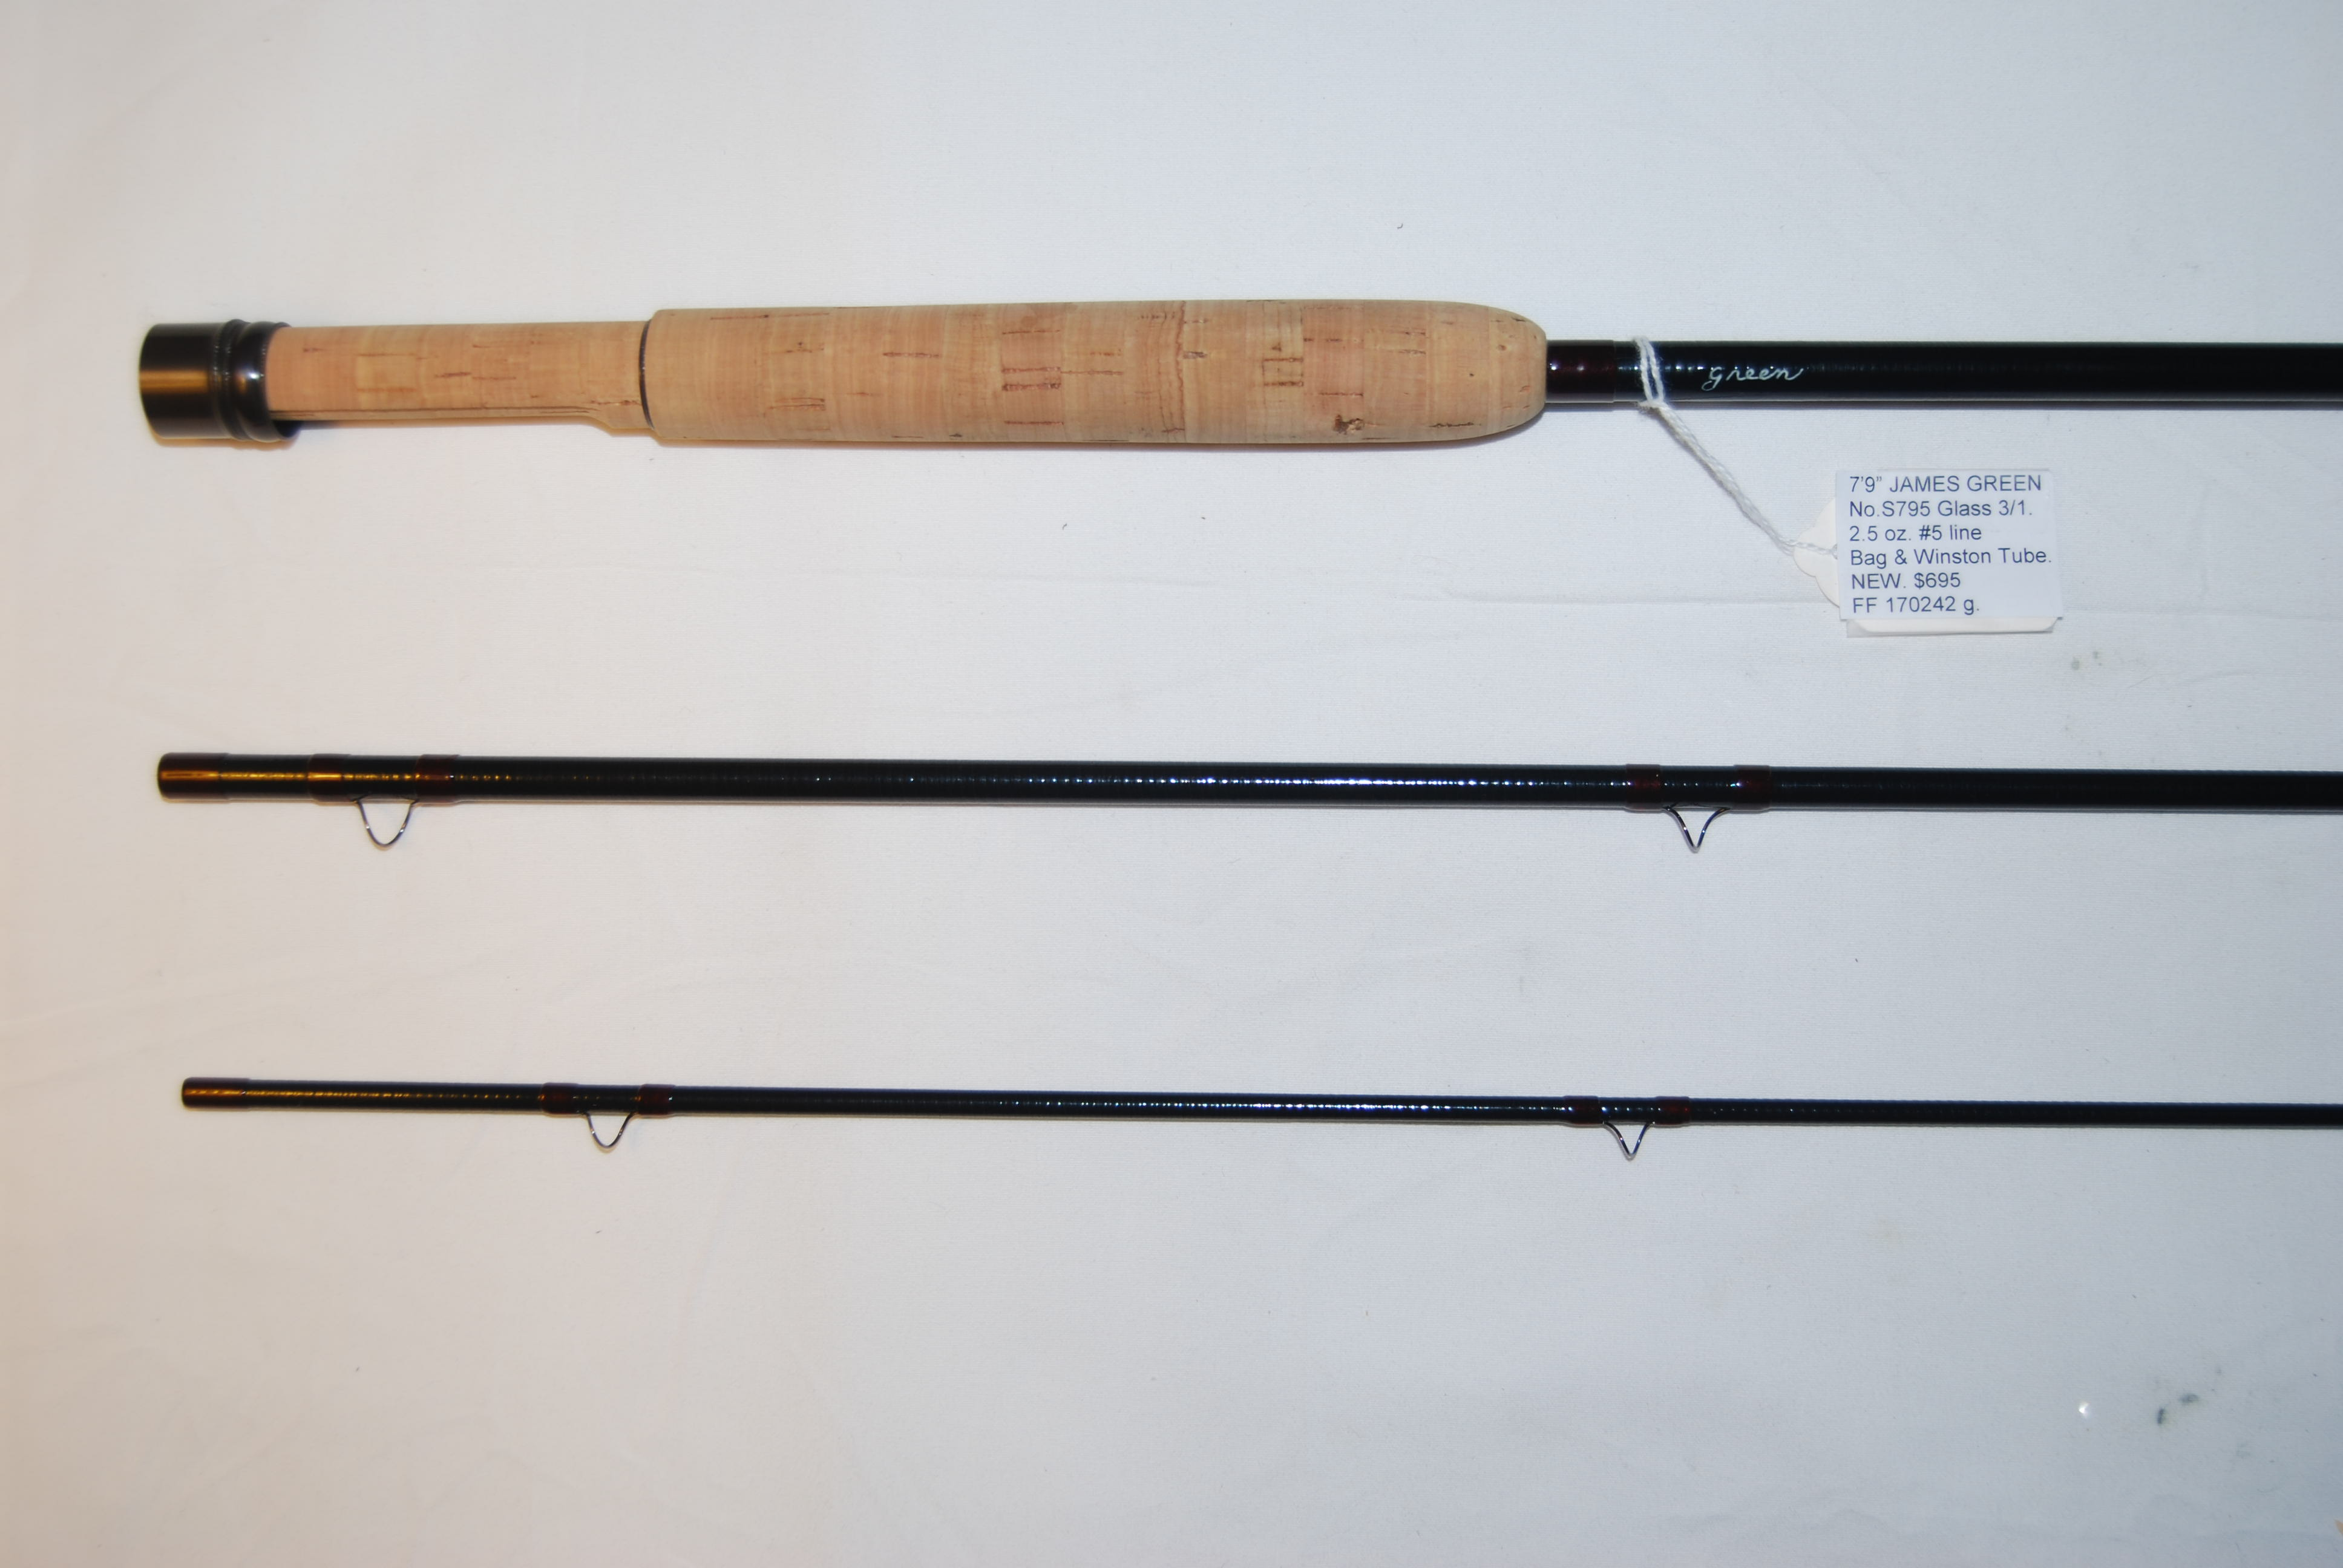 "Image for 7'9"" JAMES GREEN SPRING CREEK SERIES. No. S795 Glass 3/1.  2.5 oz.  #5 line. Unsanded medium action black glass."